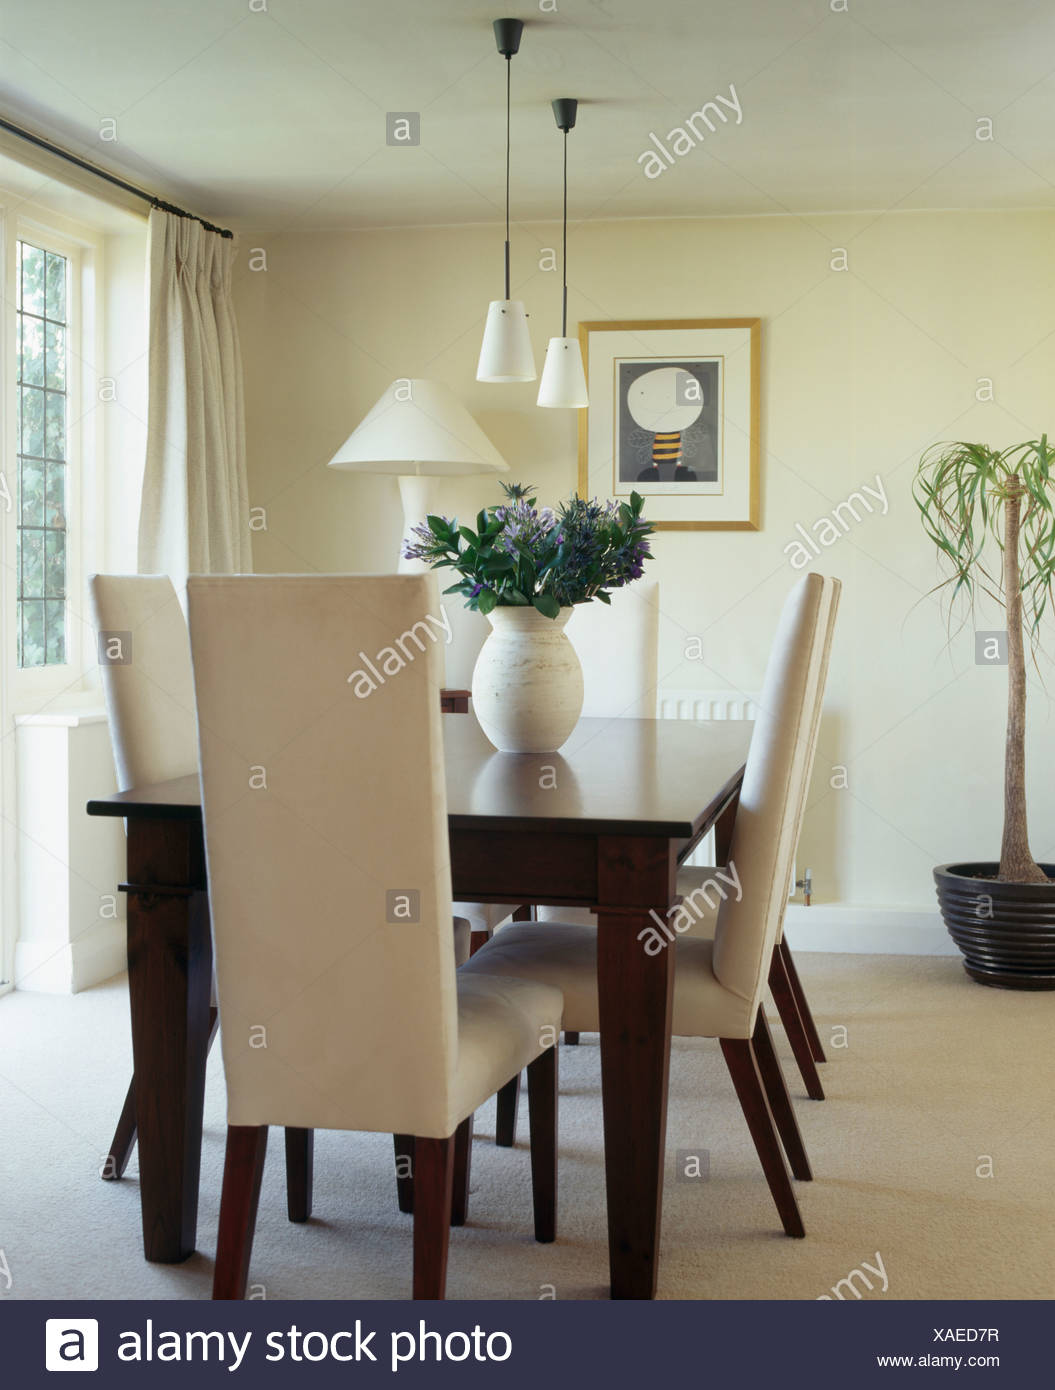 Cream Upholstered High Back Chairs And Dark Wood Table In Modern